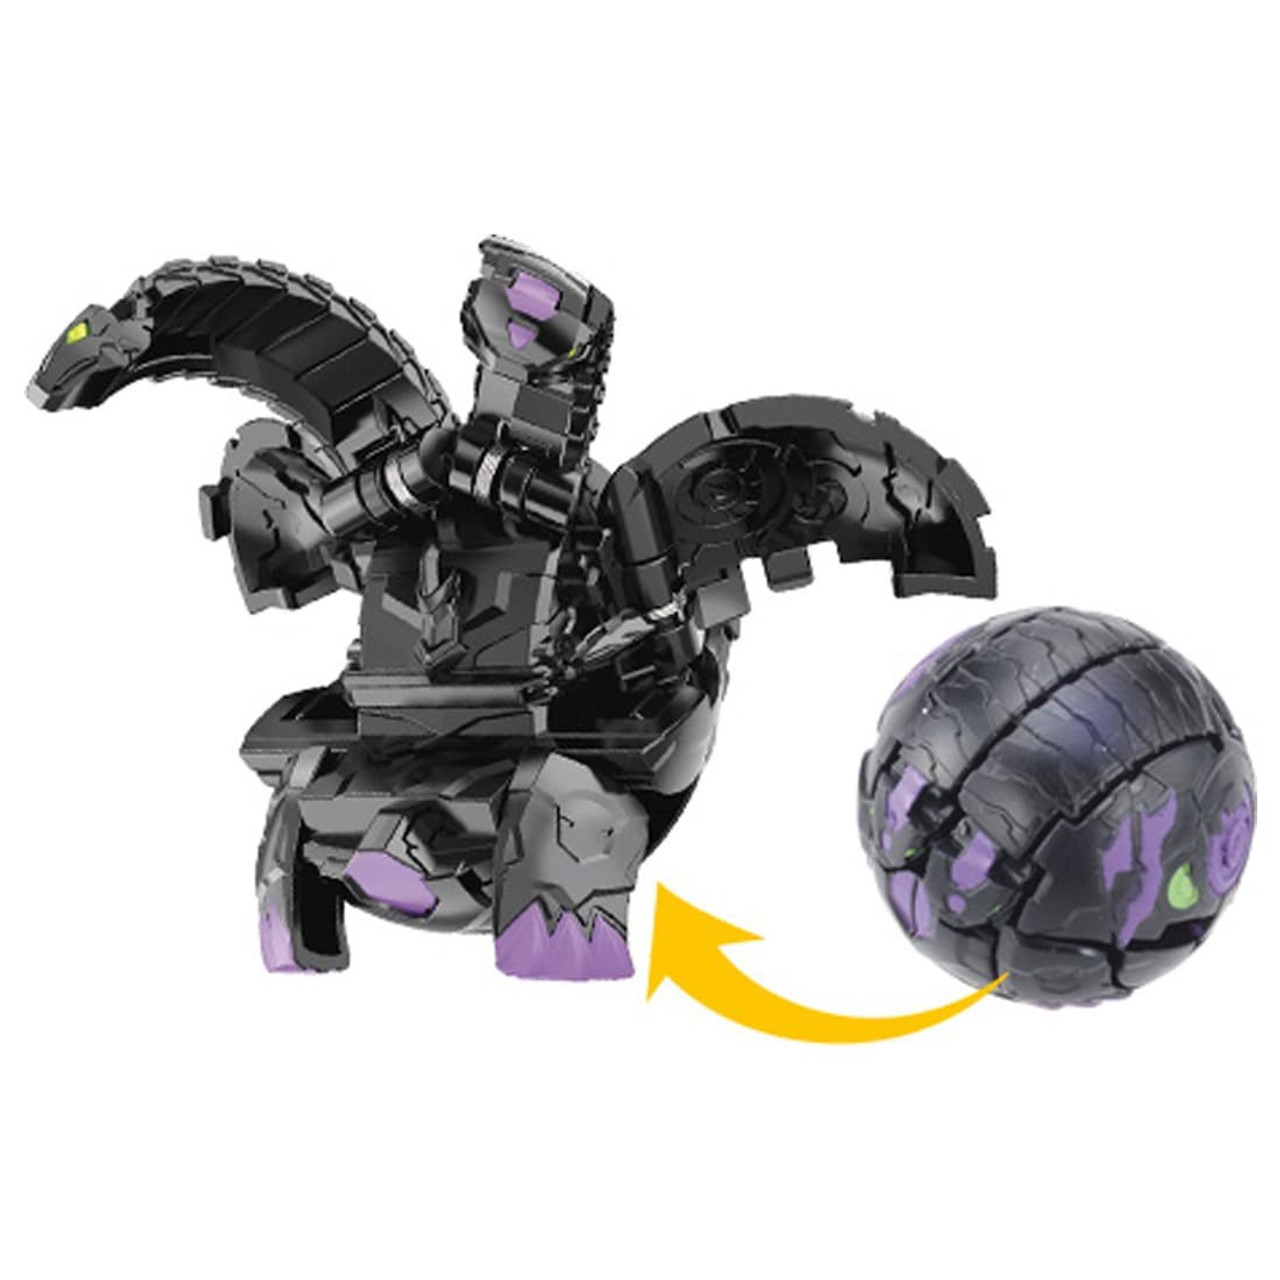 BAKUGAN BP BASIC 004 BALL 6D DOUBLE HEADED DRAGON BLACK